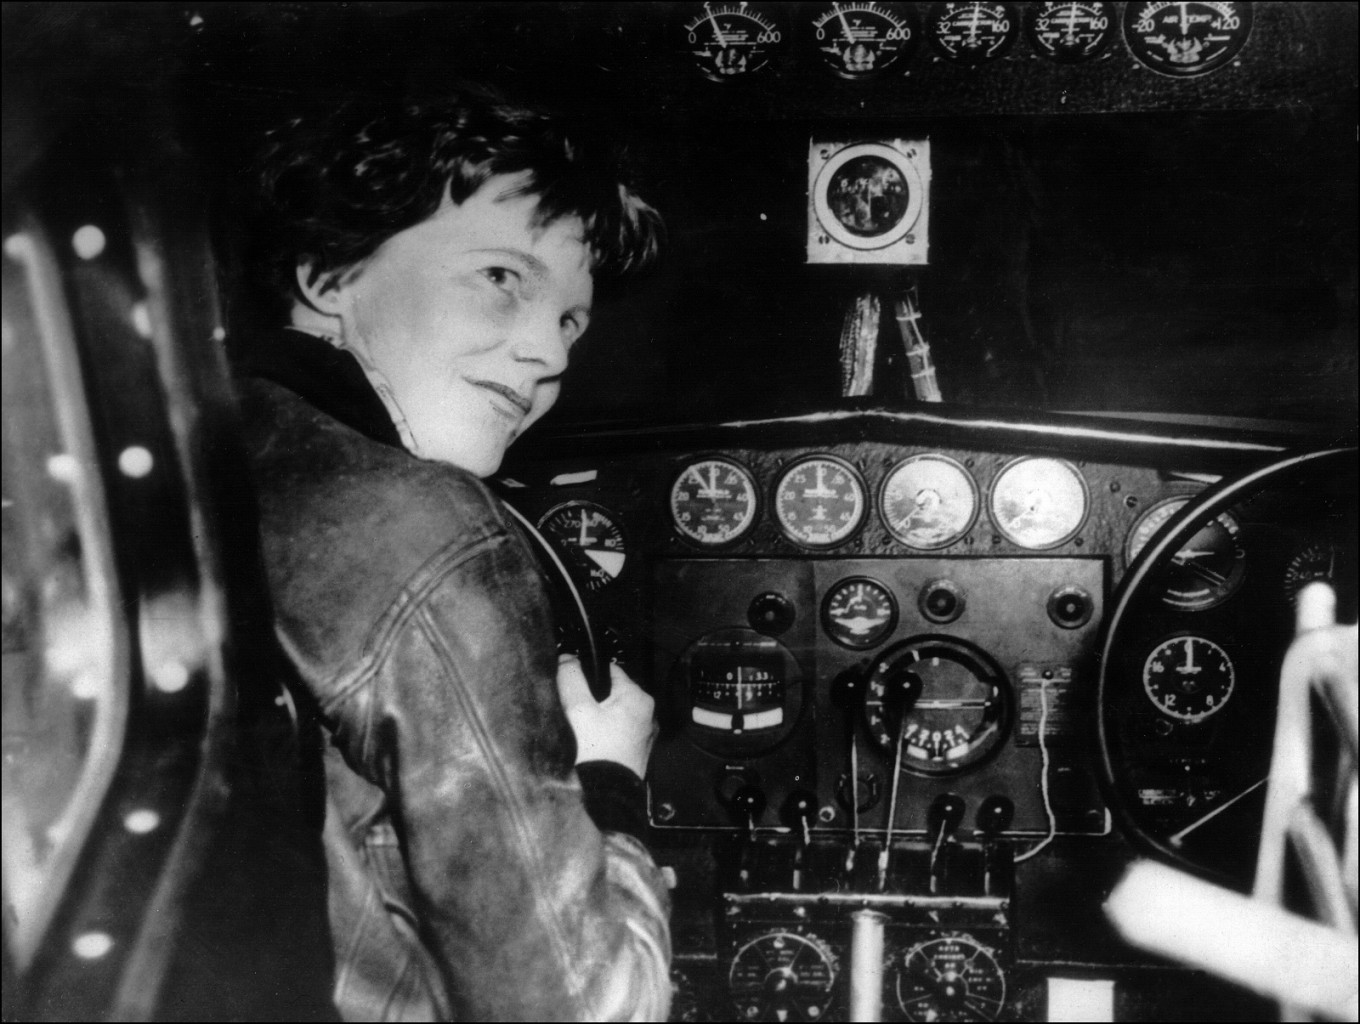 An undated 1930's file photo shows US aviator Amelia Earhart looking through the cockpit window of an aircraft in Essonne, France.